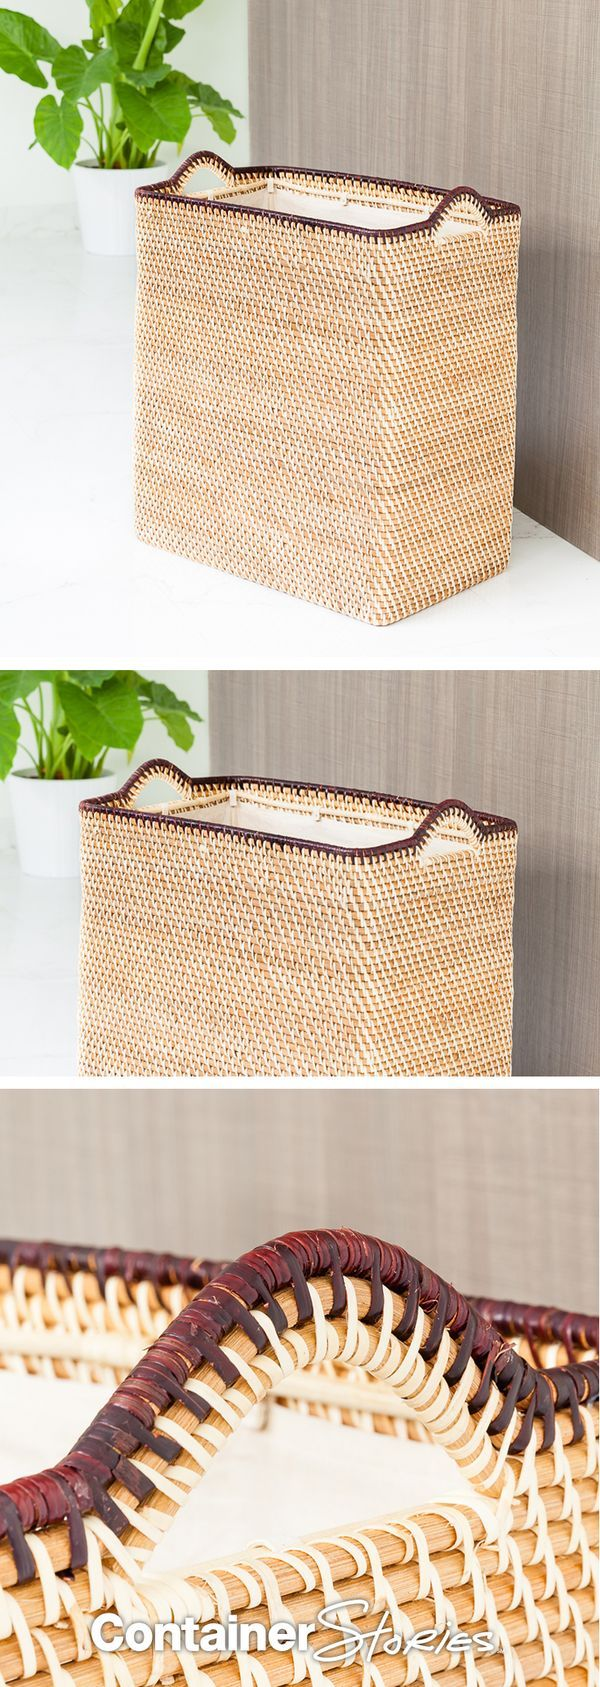 We're bringing woven back with our Rattan Hamper! Shop this beauty before it's gone!